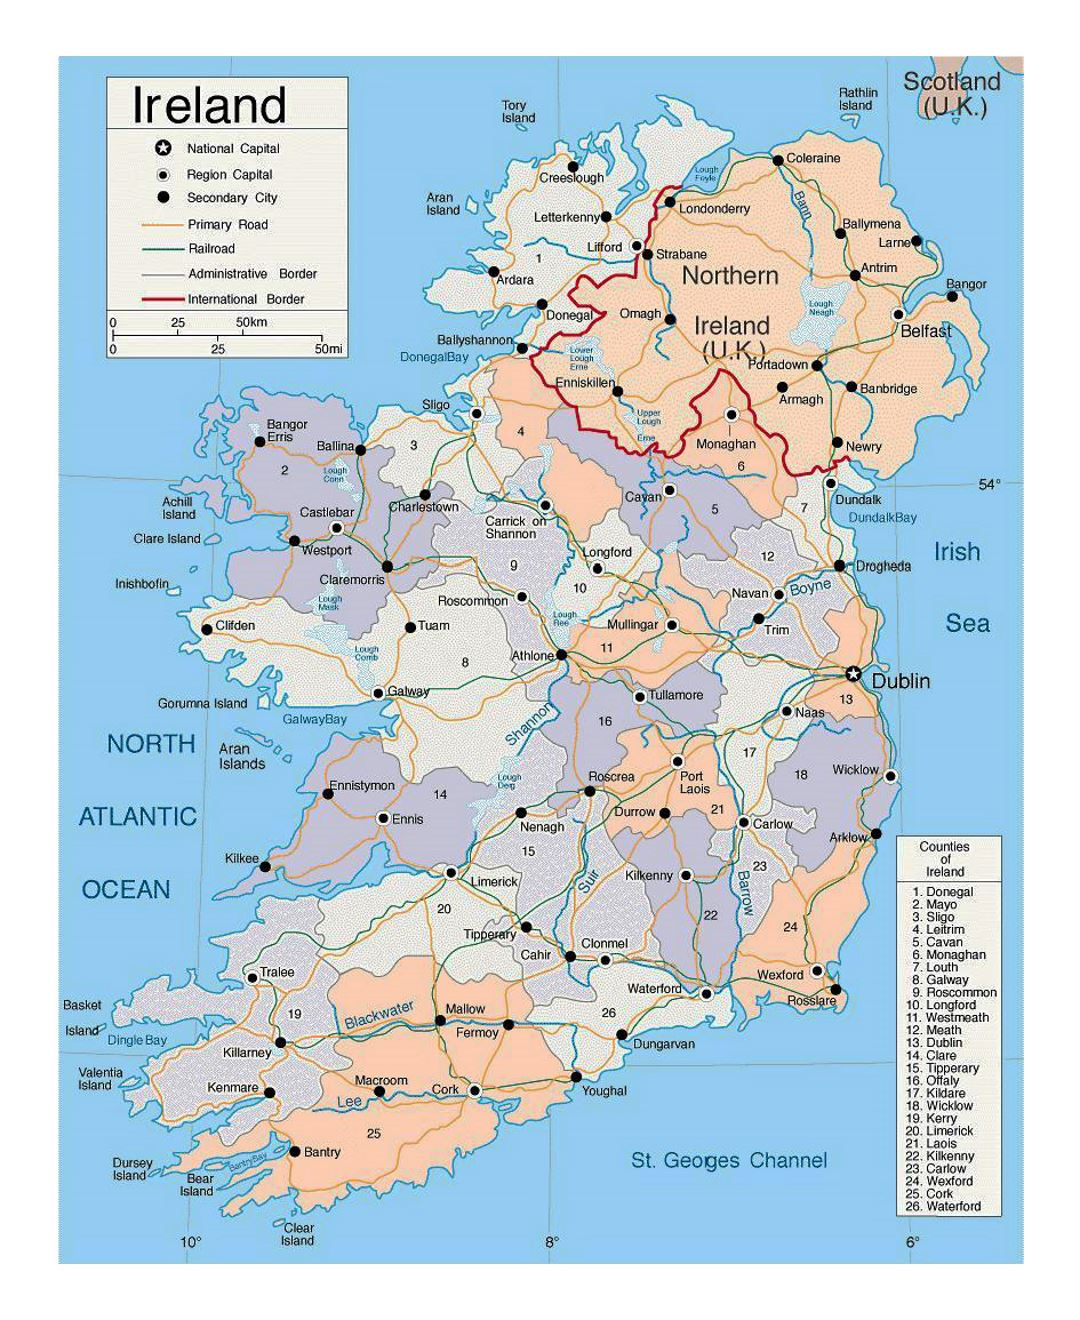 Detailed Political And Administrative Map Of Ireland With Roads - Cities map of ireland